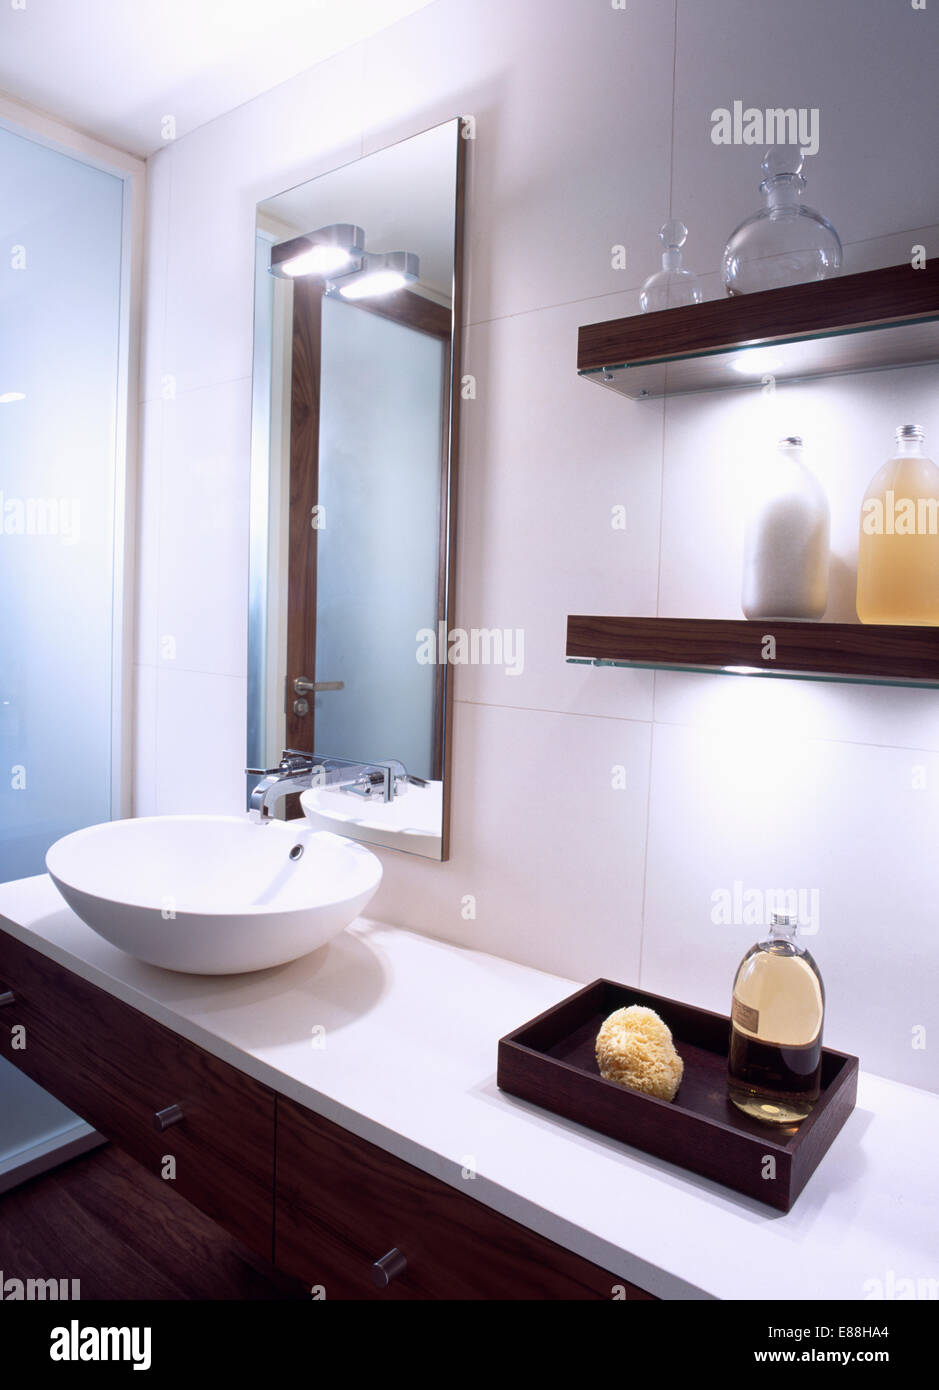 Awesome Mirror Above Bowl Basin On Vanity Unit With Sponge And Bath Interior Design Ideas Oxytryabchikinfo